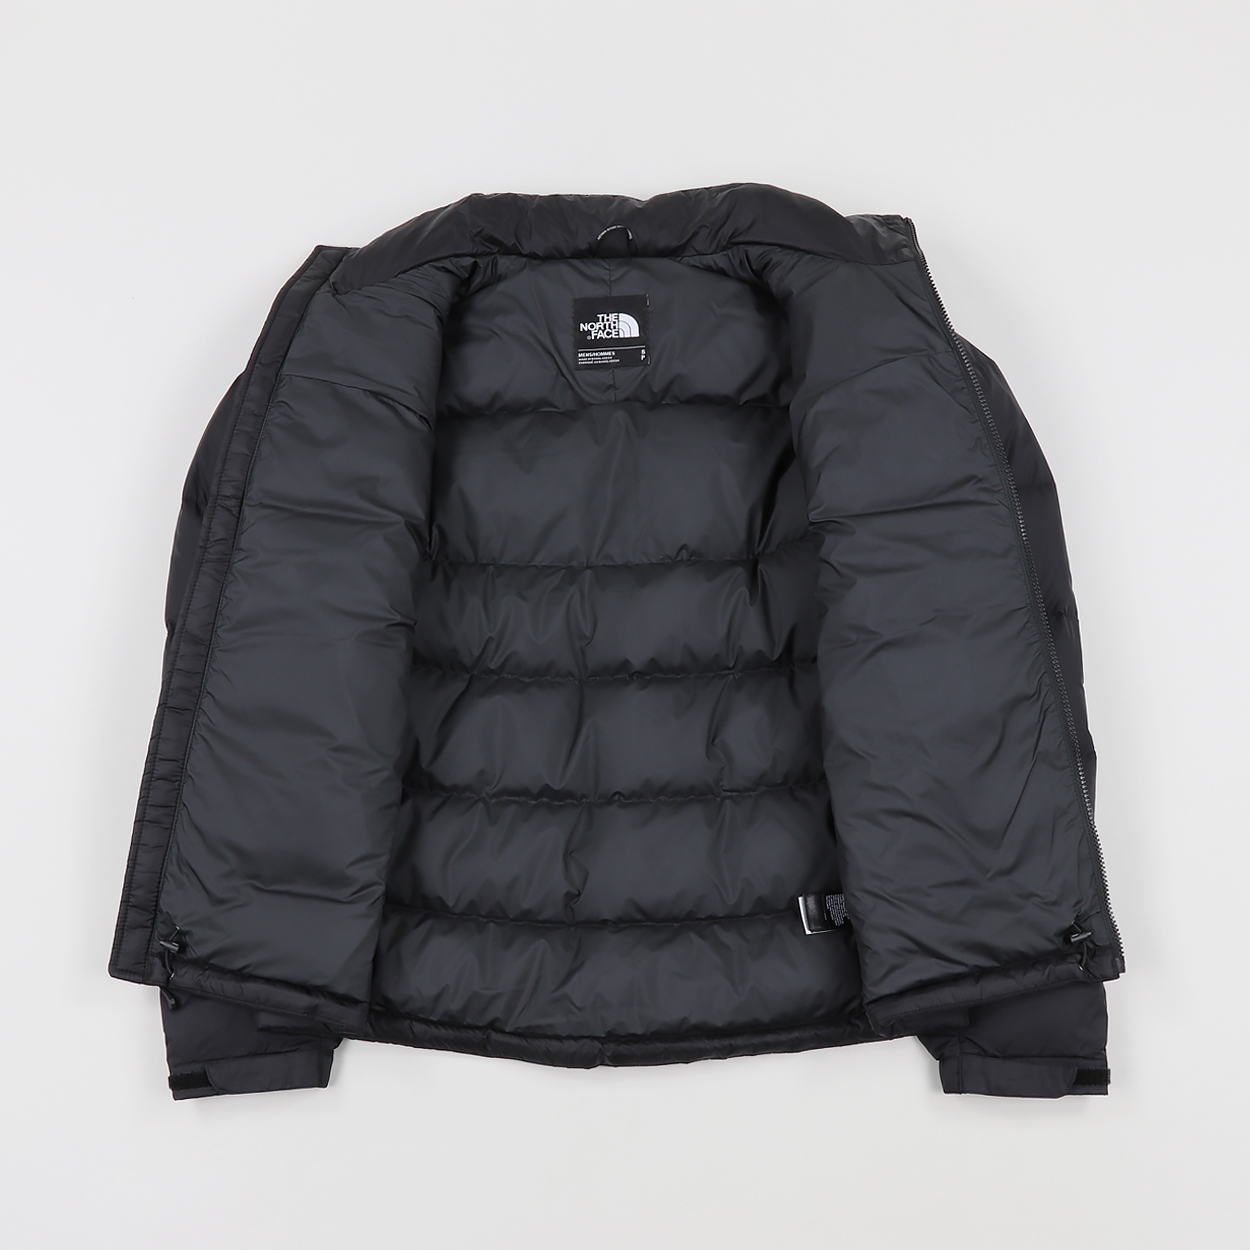 3d15acc17740 The North Face Nuptse 2 Winter Jacket Black High Rise Grey £126.00